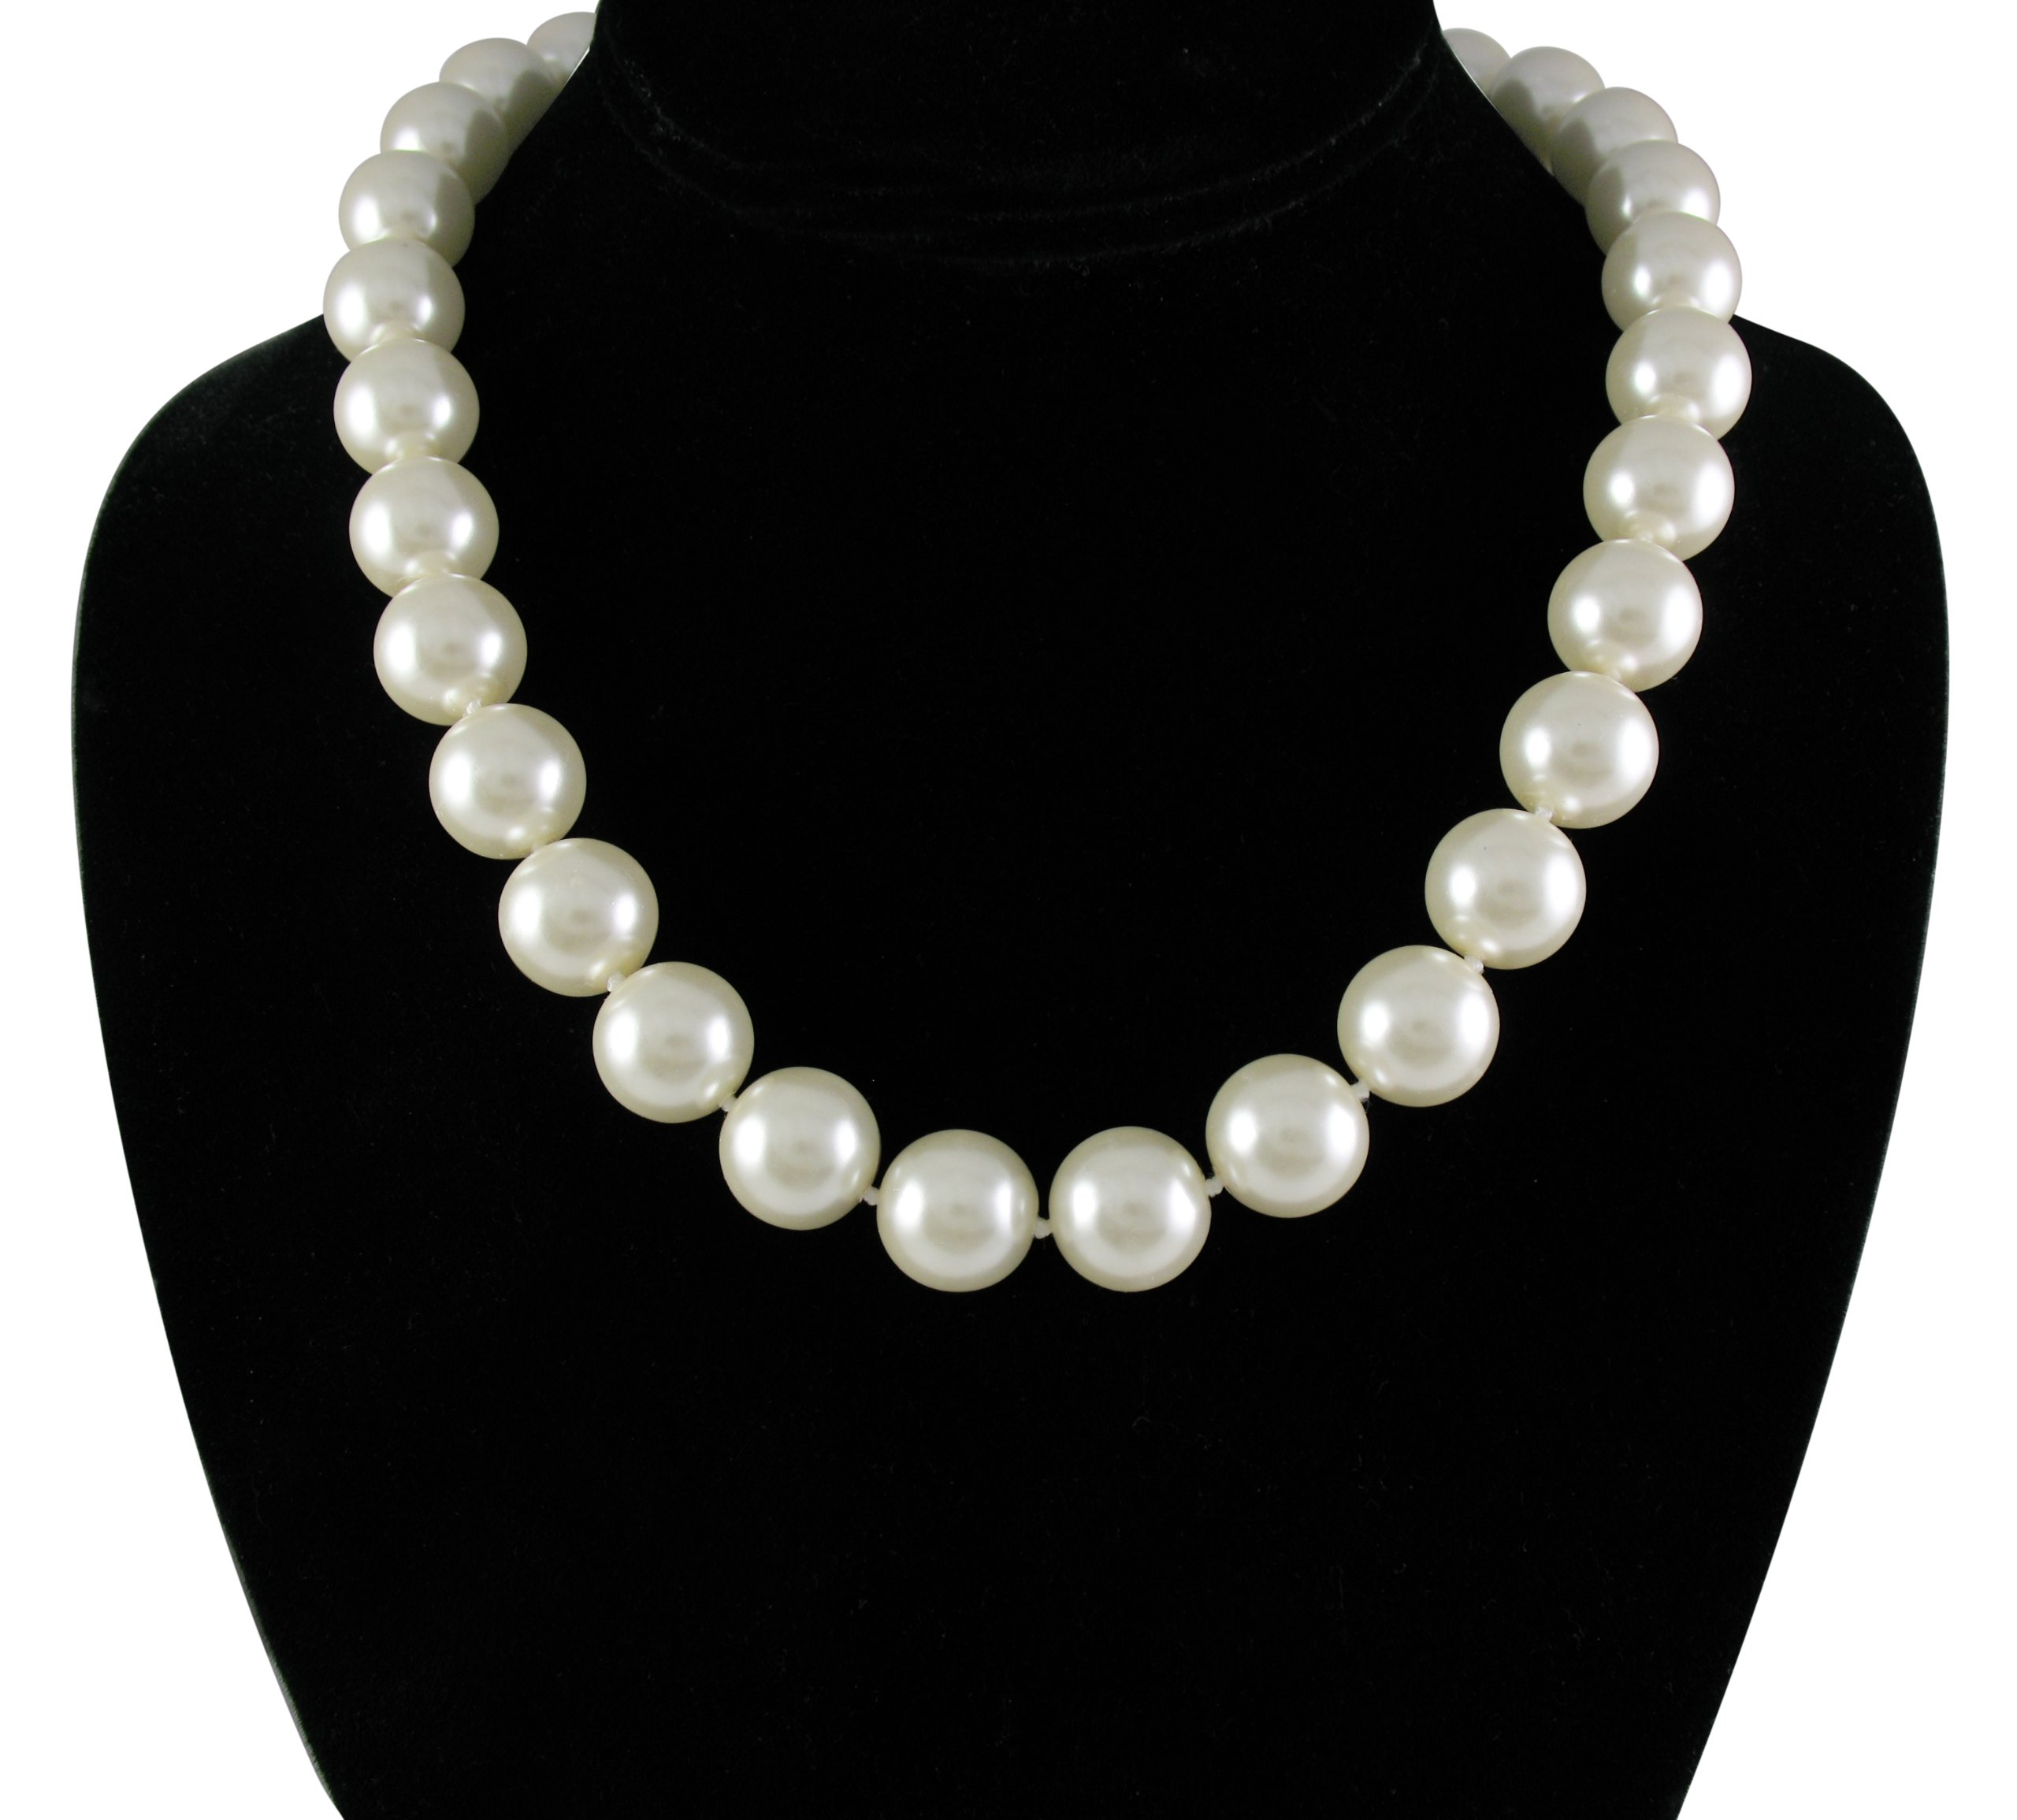 KEZEF Creations Cream White 14mm Simulated Faux Pearl Necklace Hand Knotted Strand 18 Inch